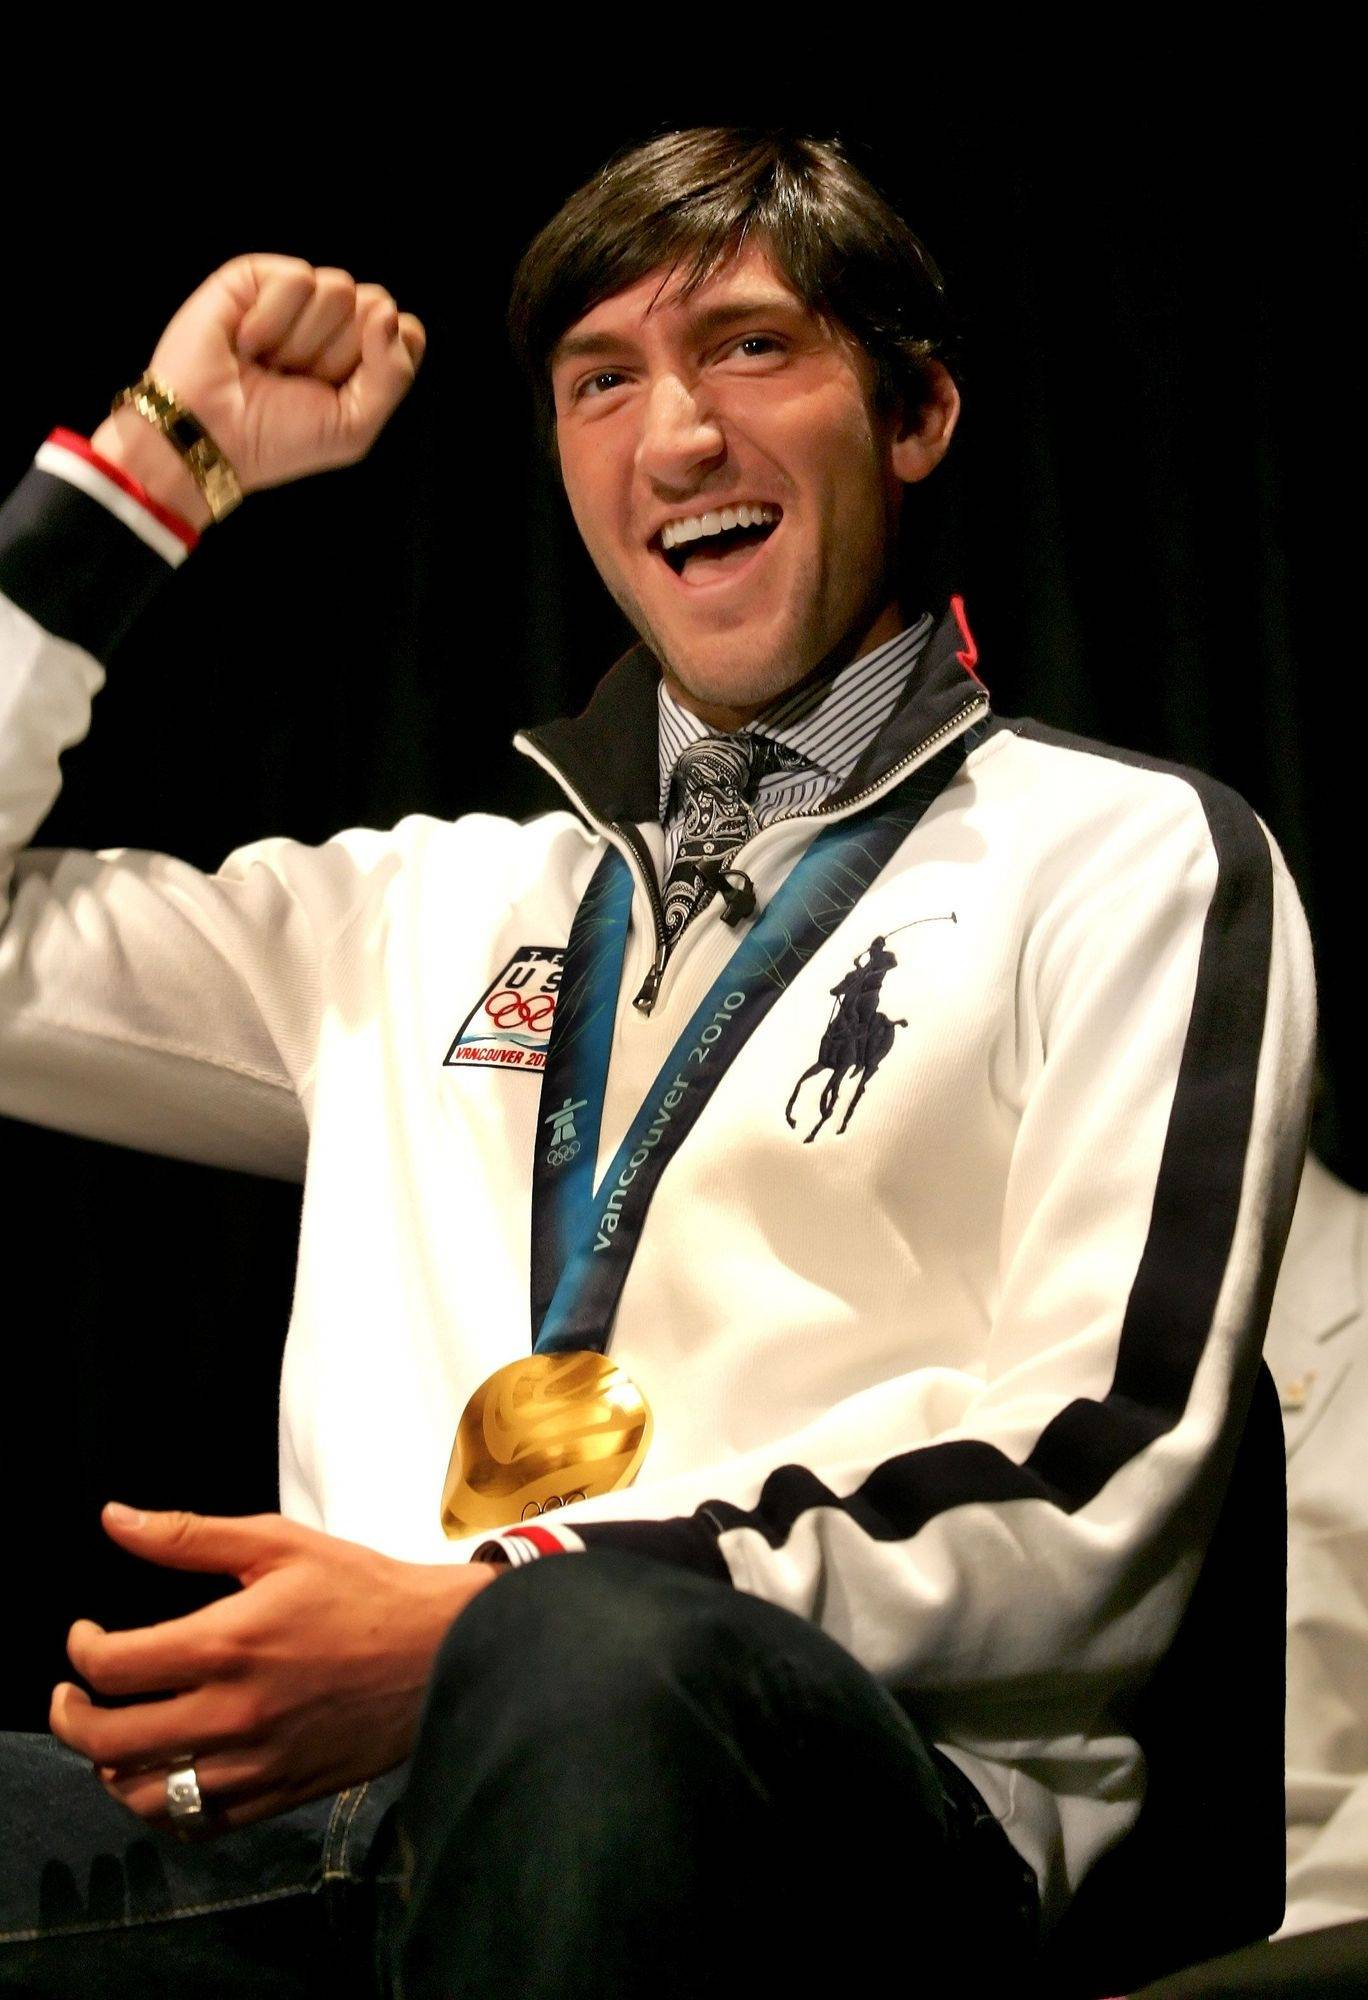 Evan Lysacek reacts to students' cheers as he returns to Neuqua Valley High School in Naperville on Friday.